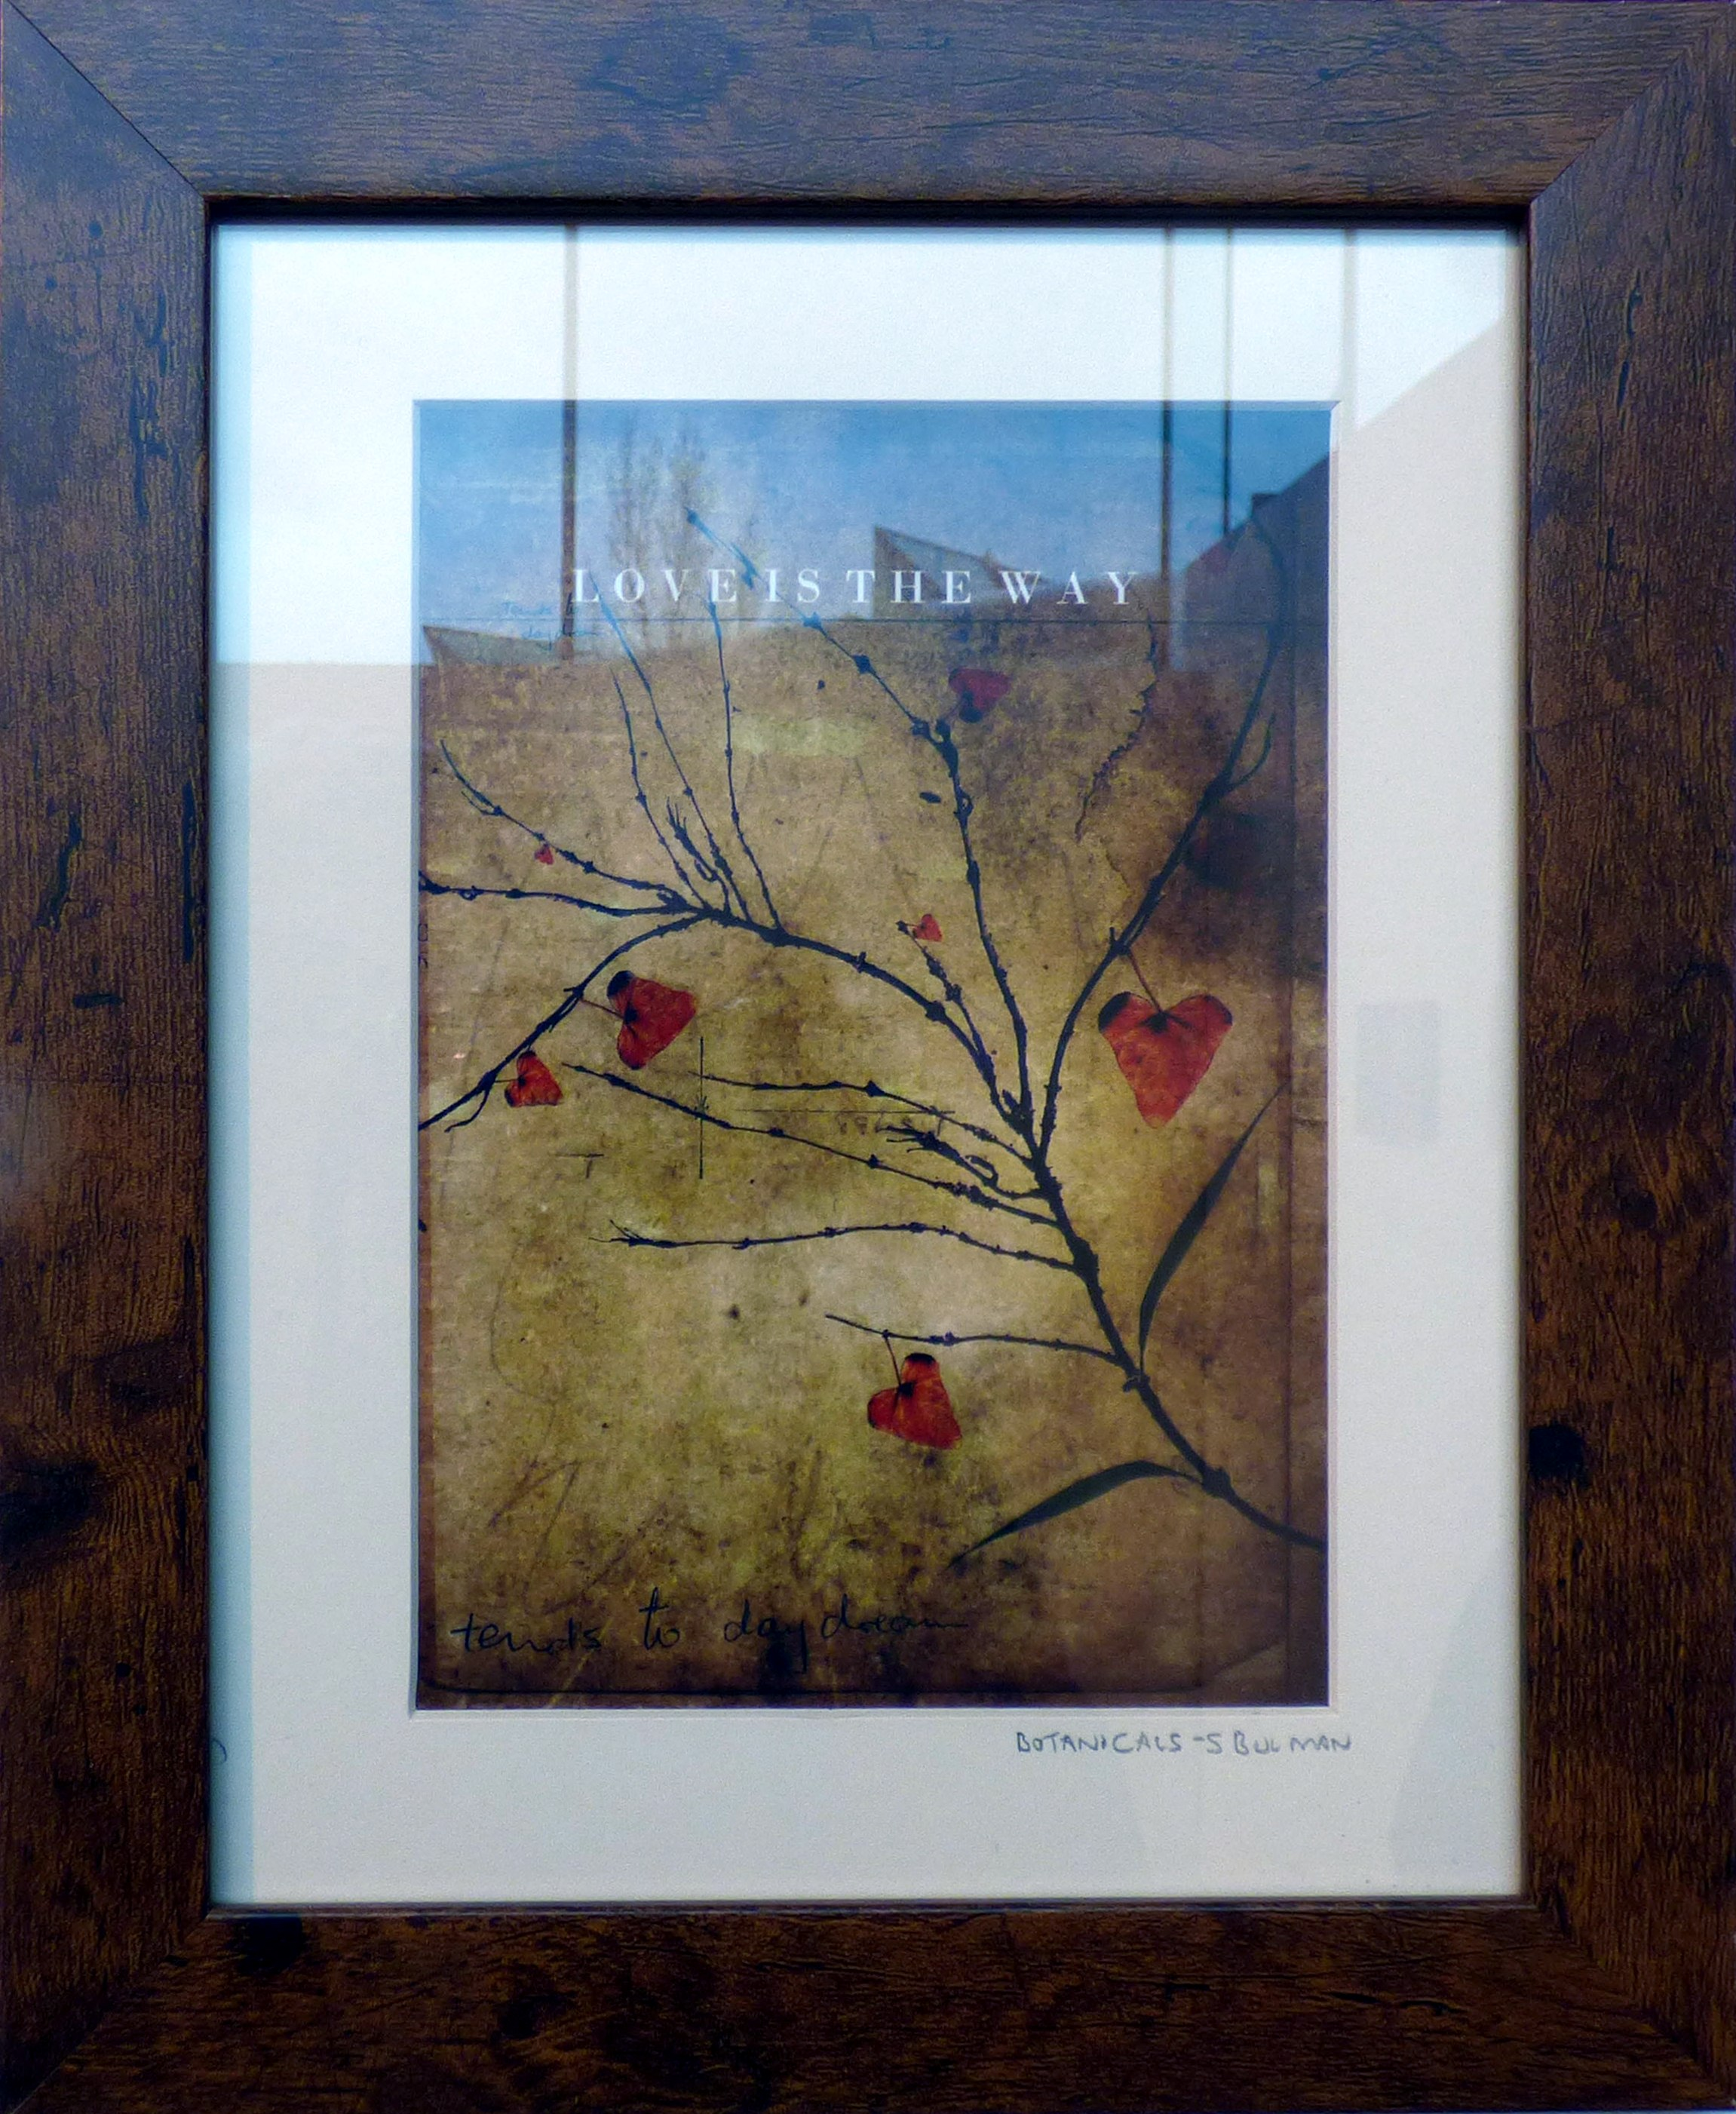 LOVE IS THE WAY by Stuart Bulman. From The Heart exhibition, St Helens, Feb 2020